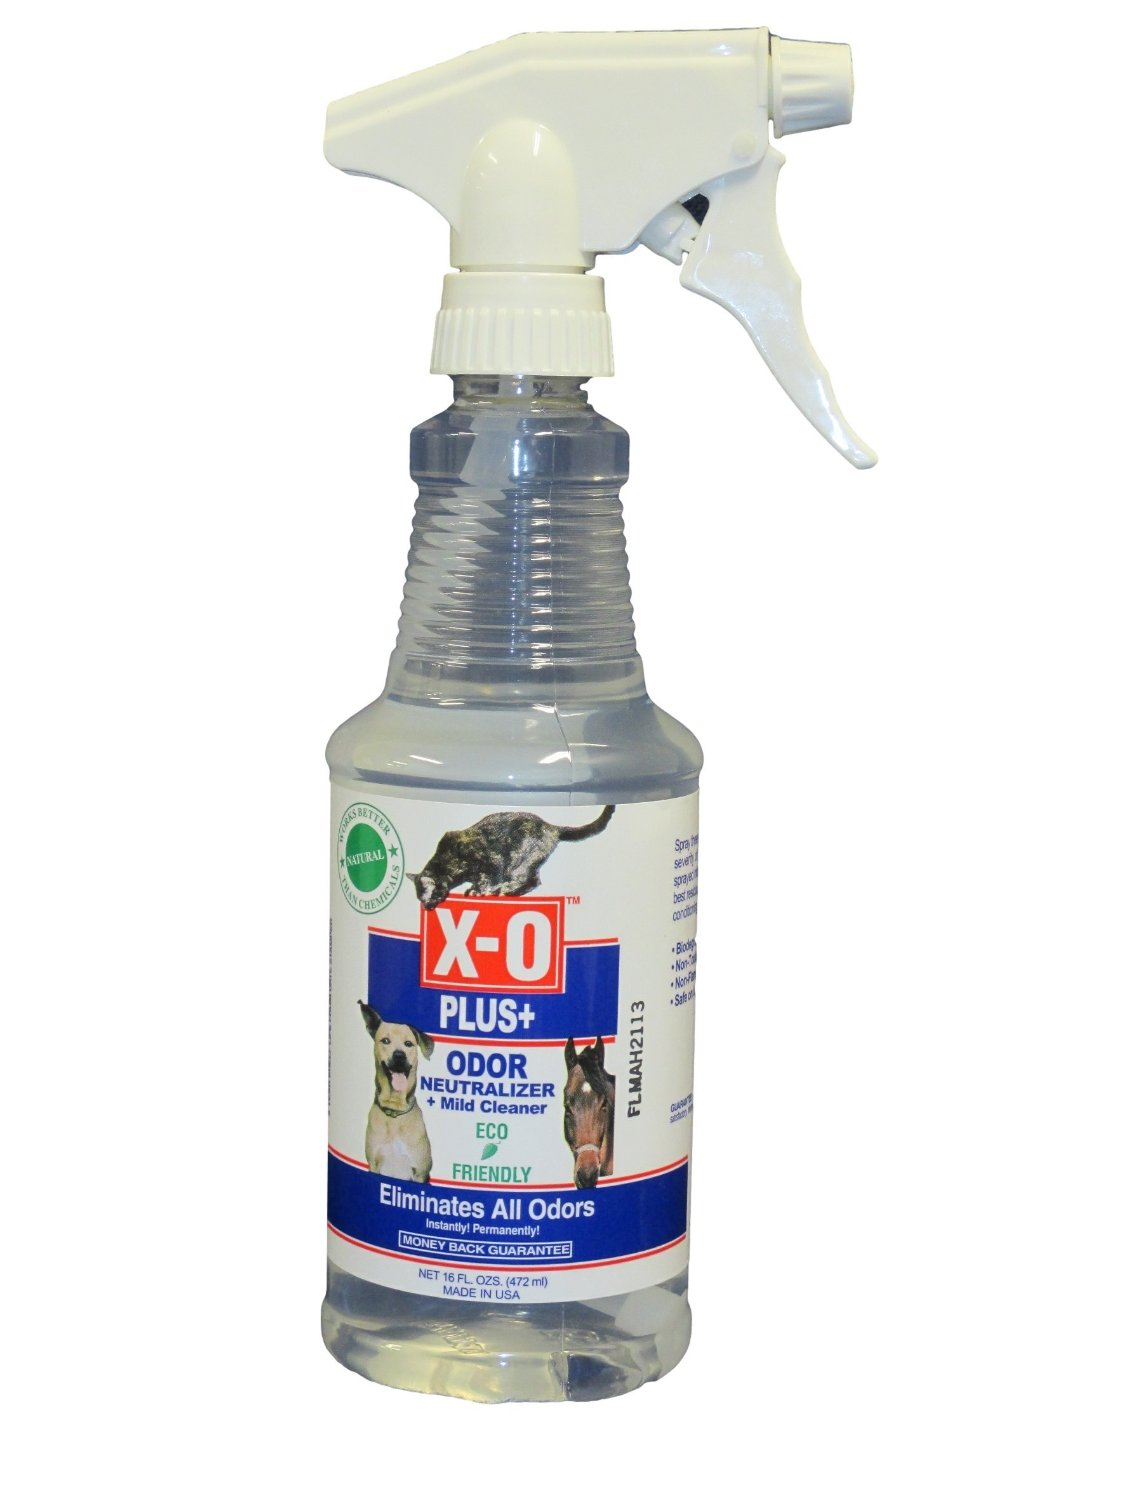 X-O odor cleaner